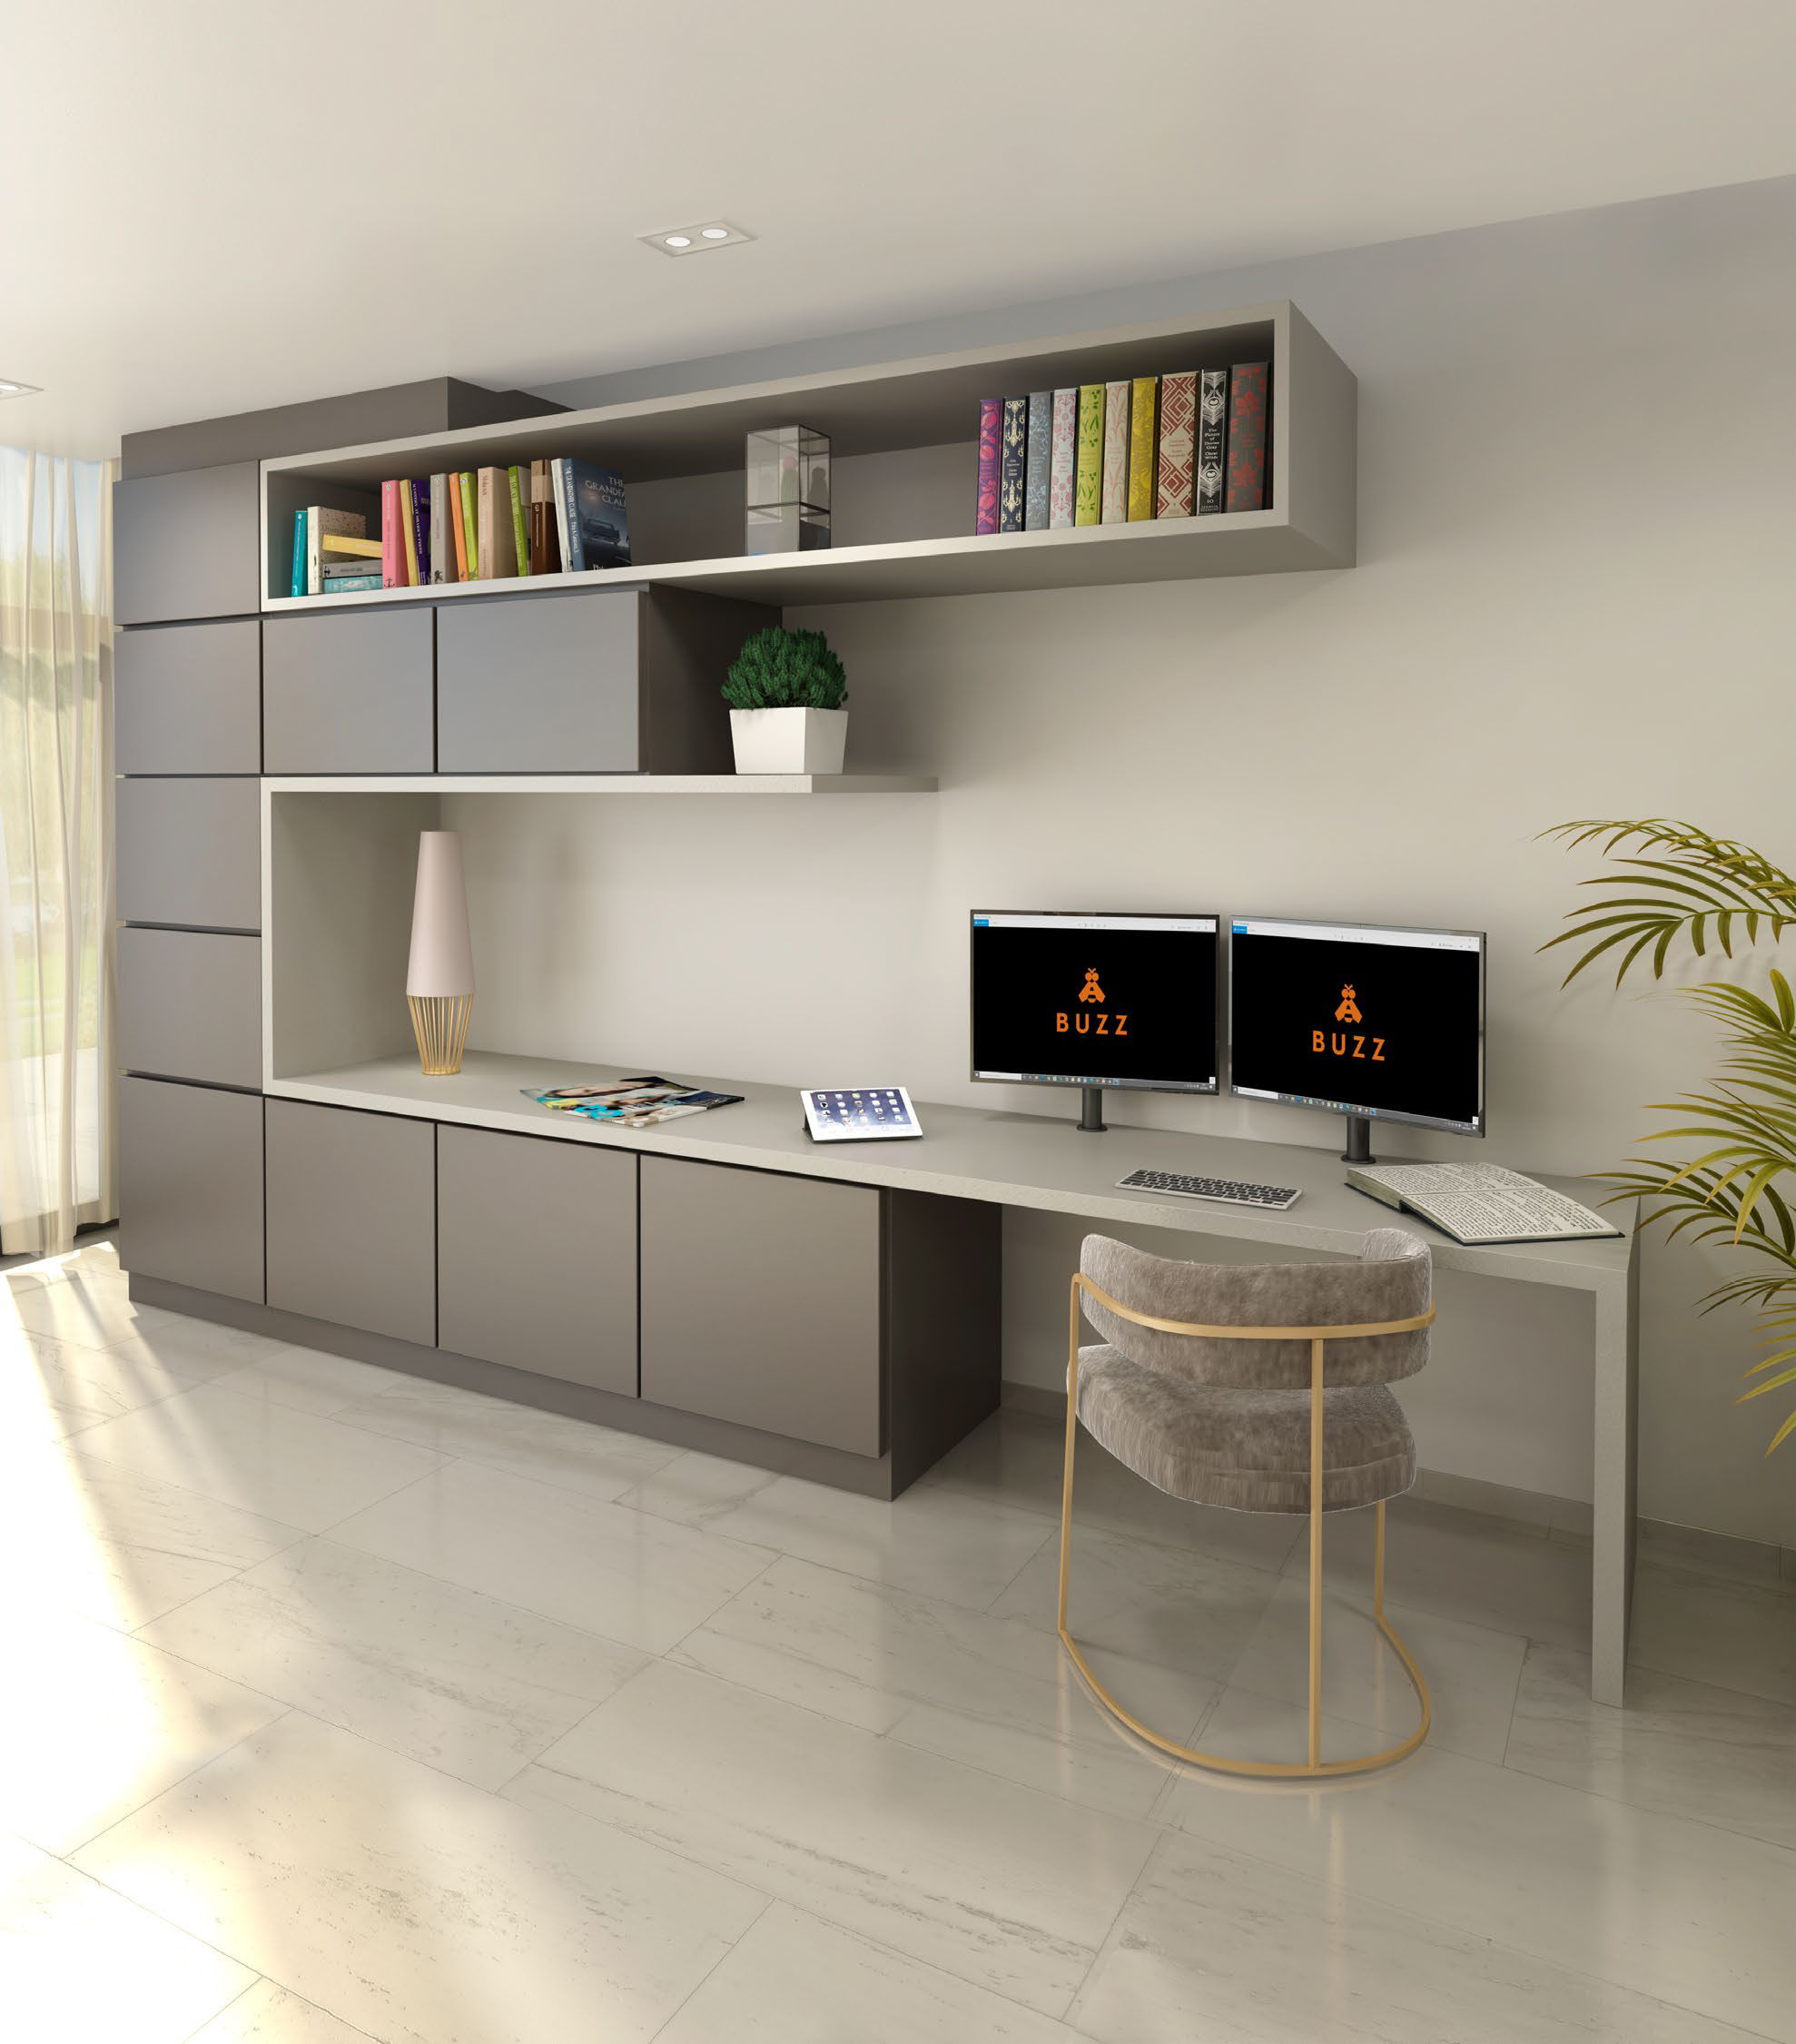 A Home Hive Workspace rendering